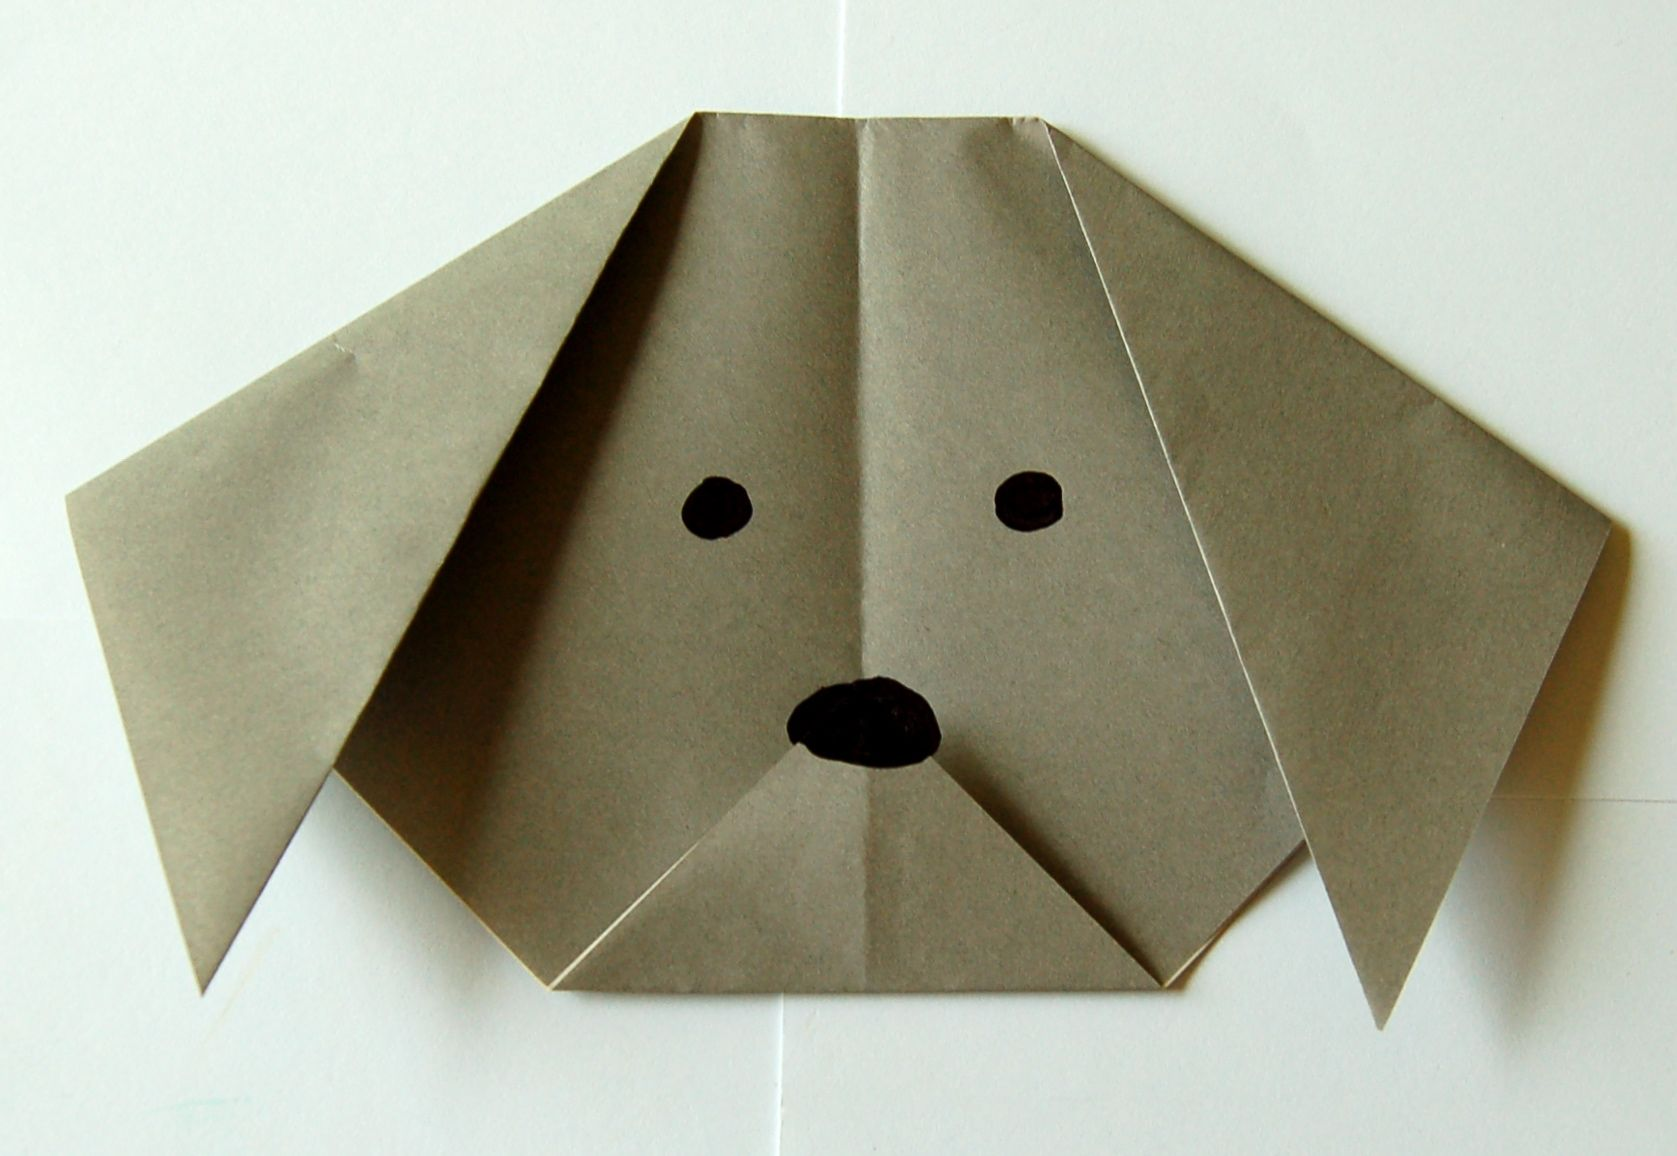 Origami dog face how to origami - Origami Dog 8 Add Face Details